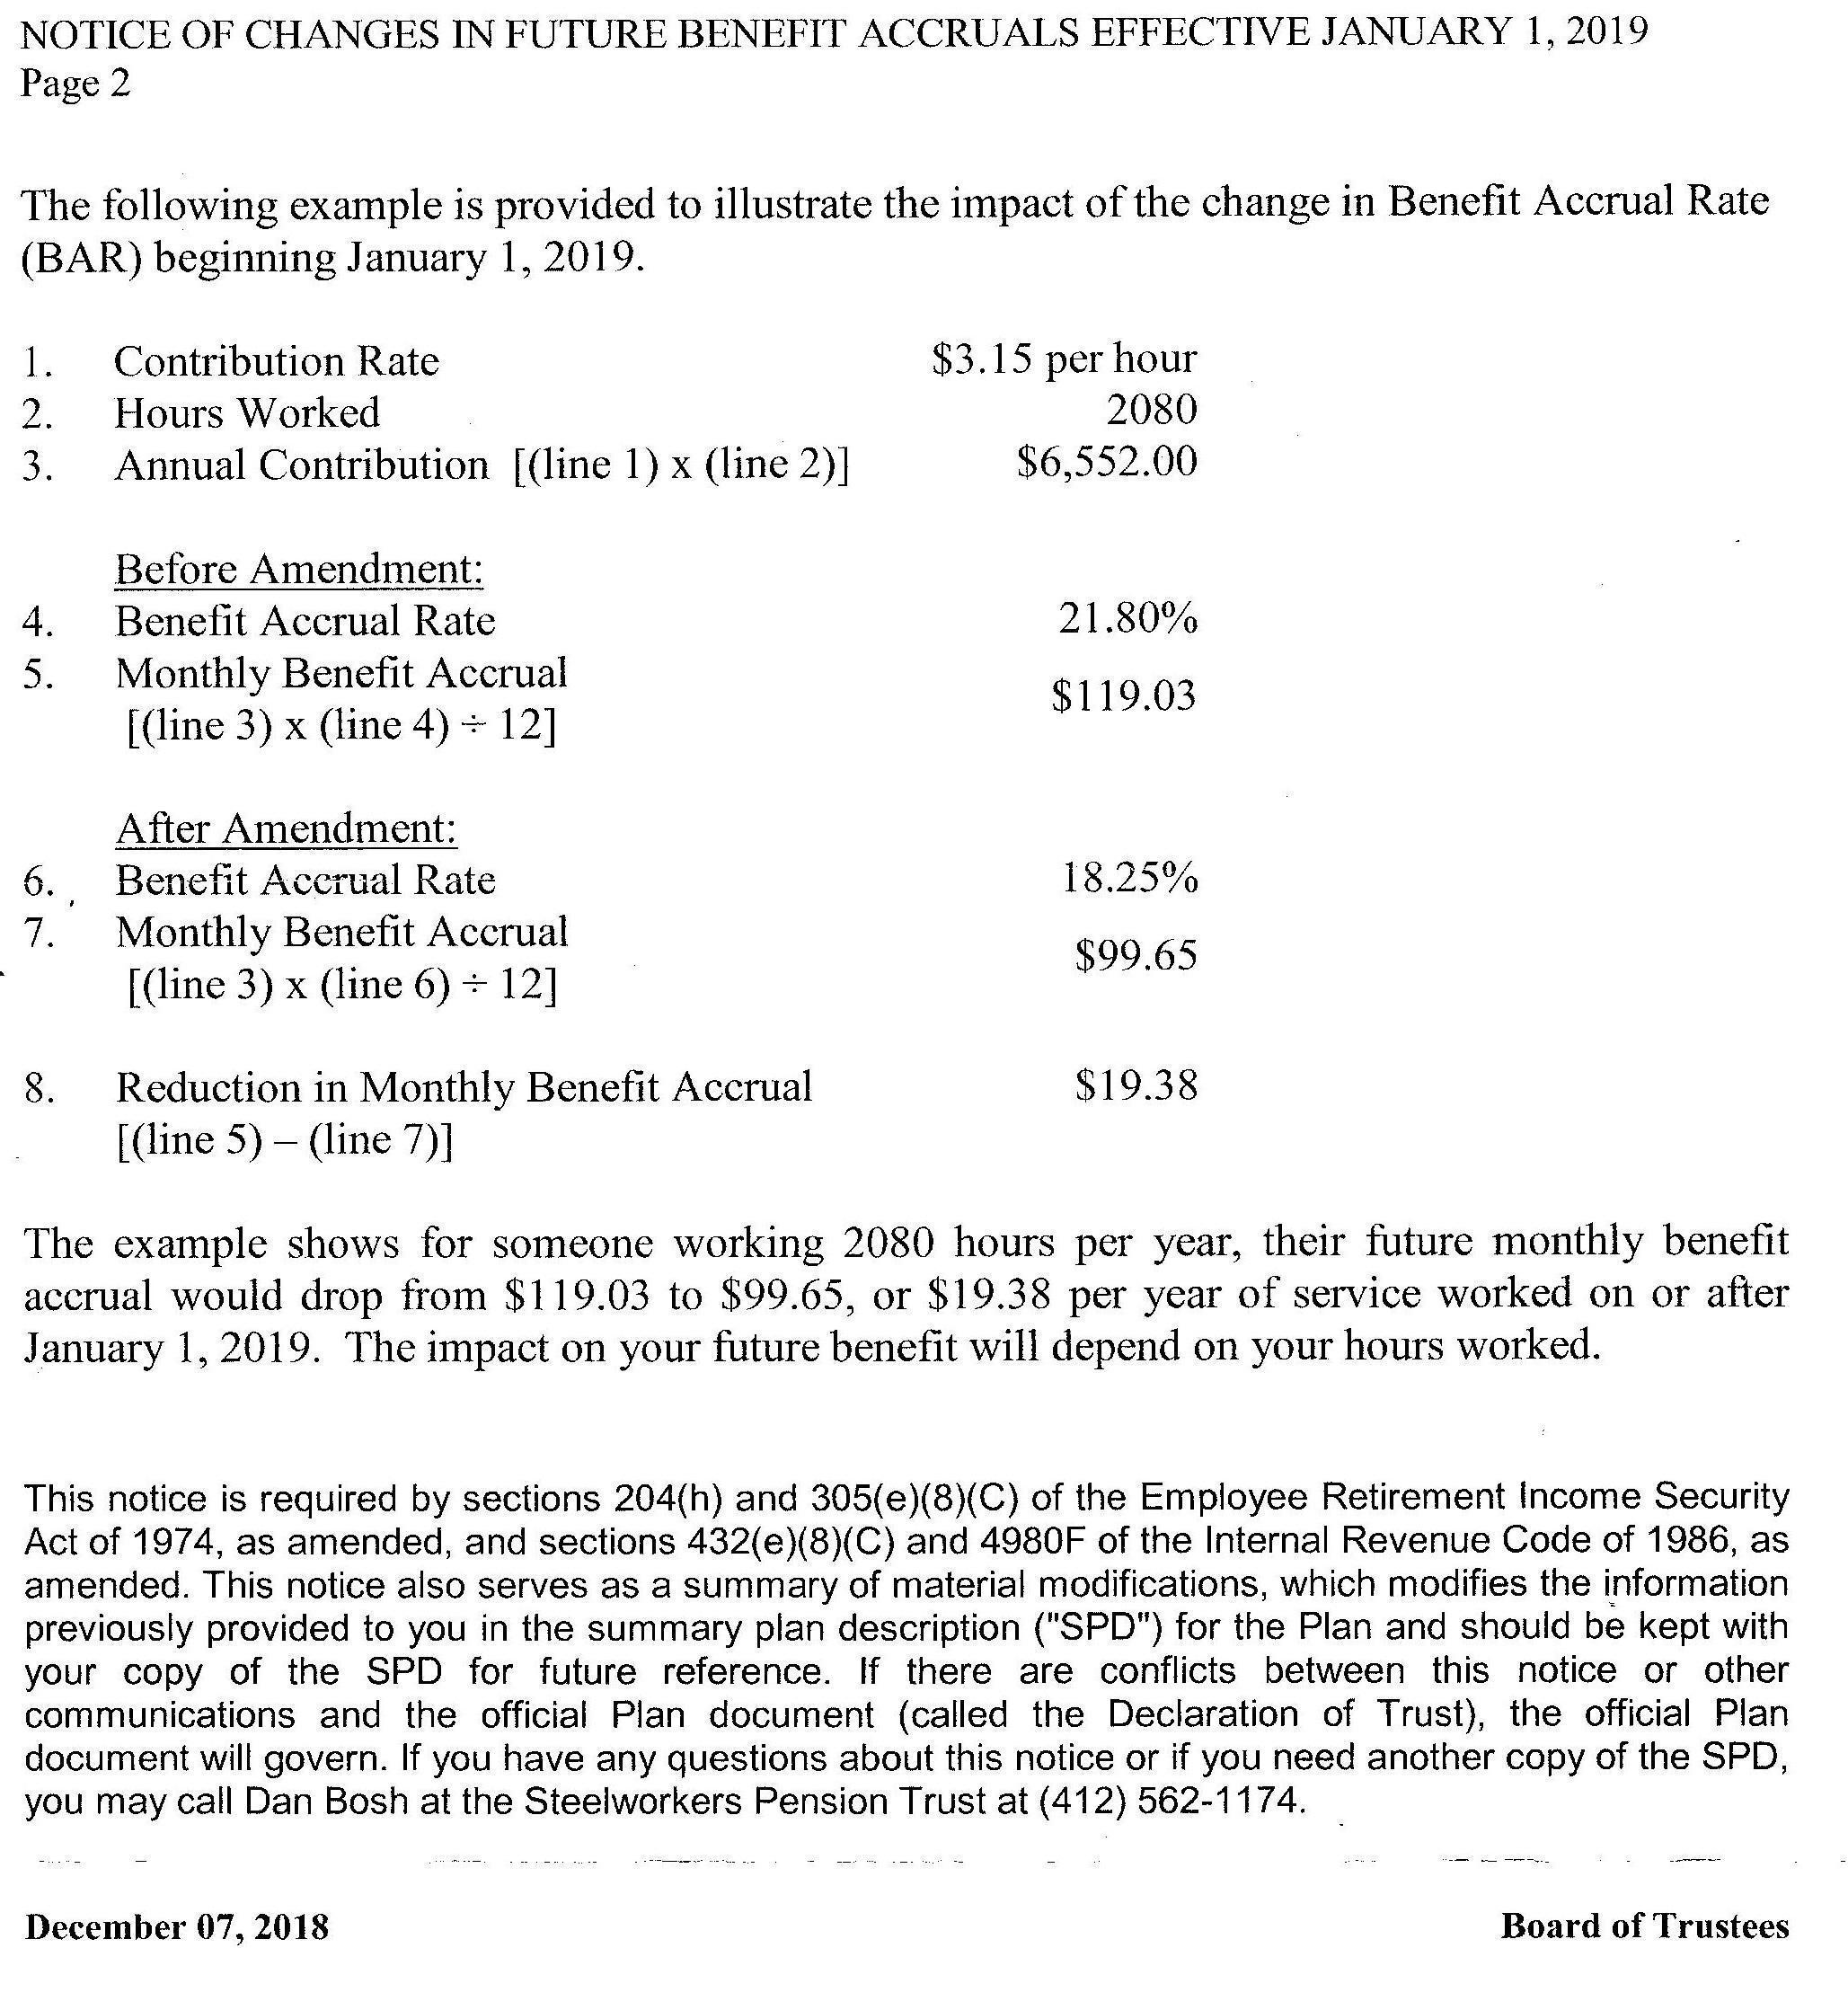 Steelworkers pension trust calculation